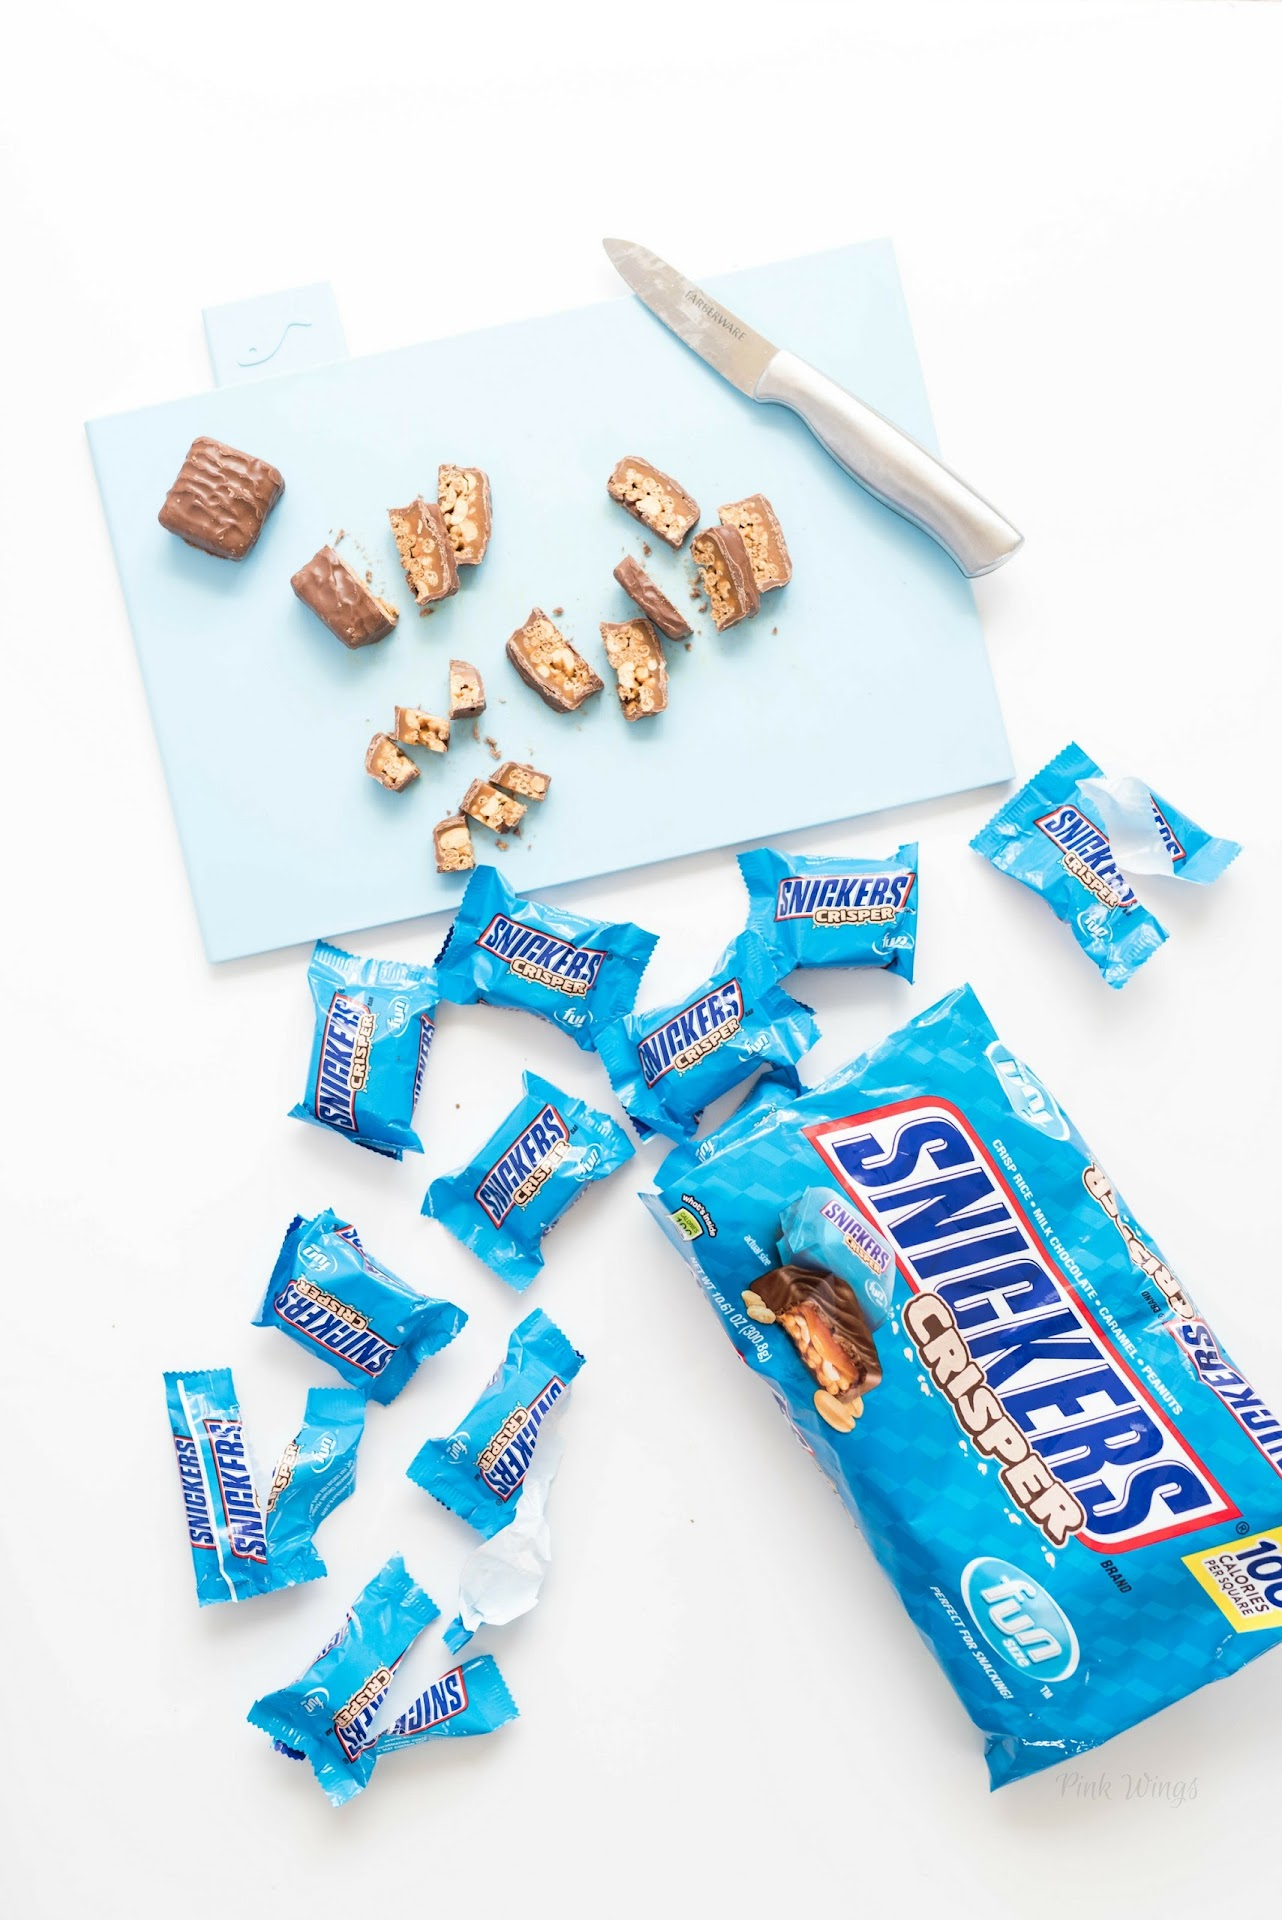 SNICKERS® Crisper, chocolate, photography, recipe prep, candy bar, American candy, fun size, Halloween candy